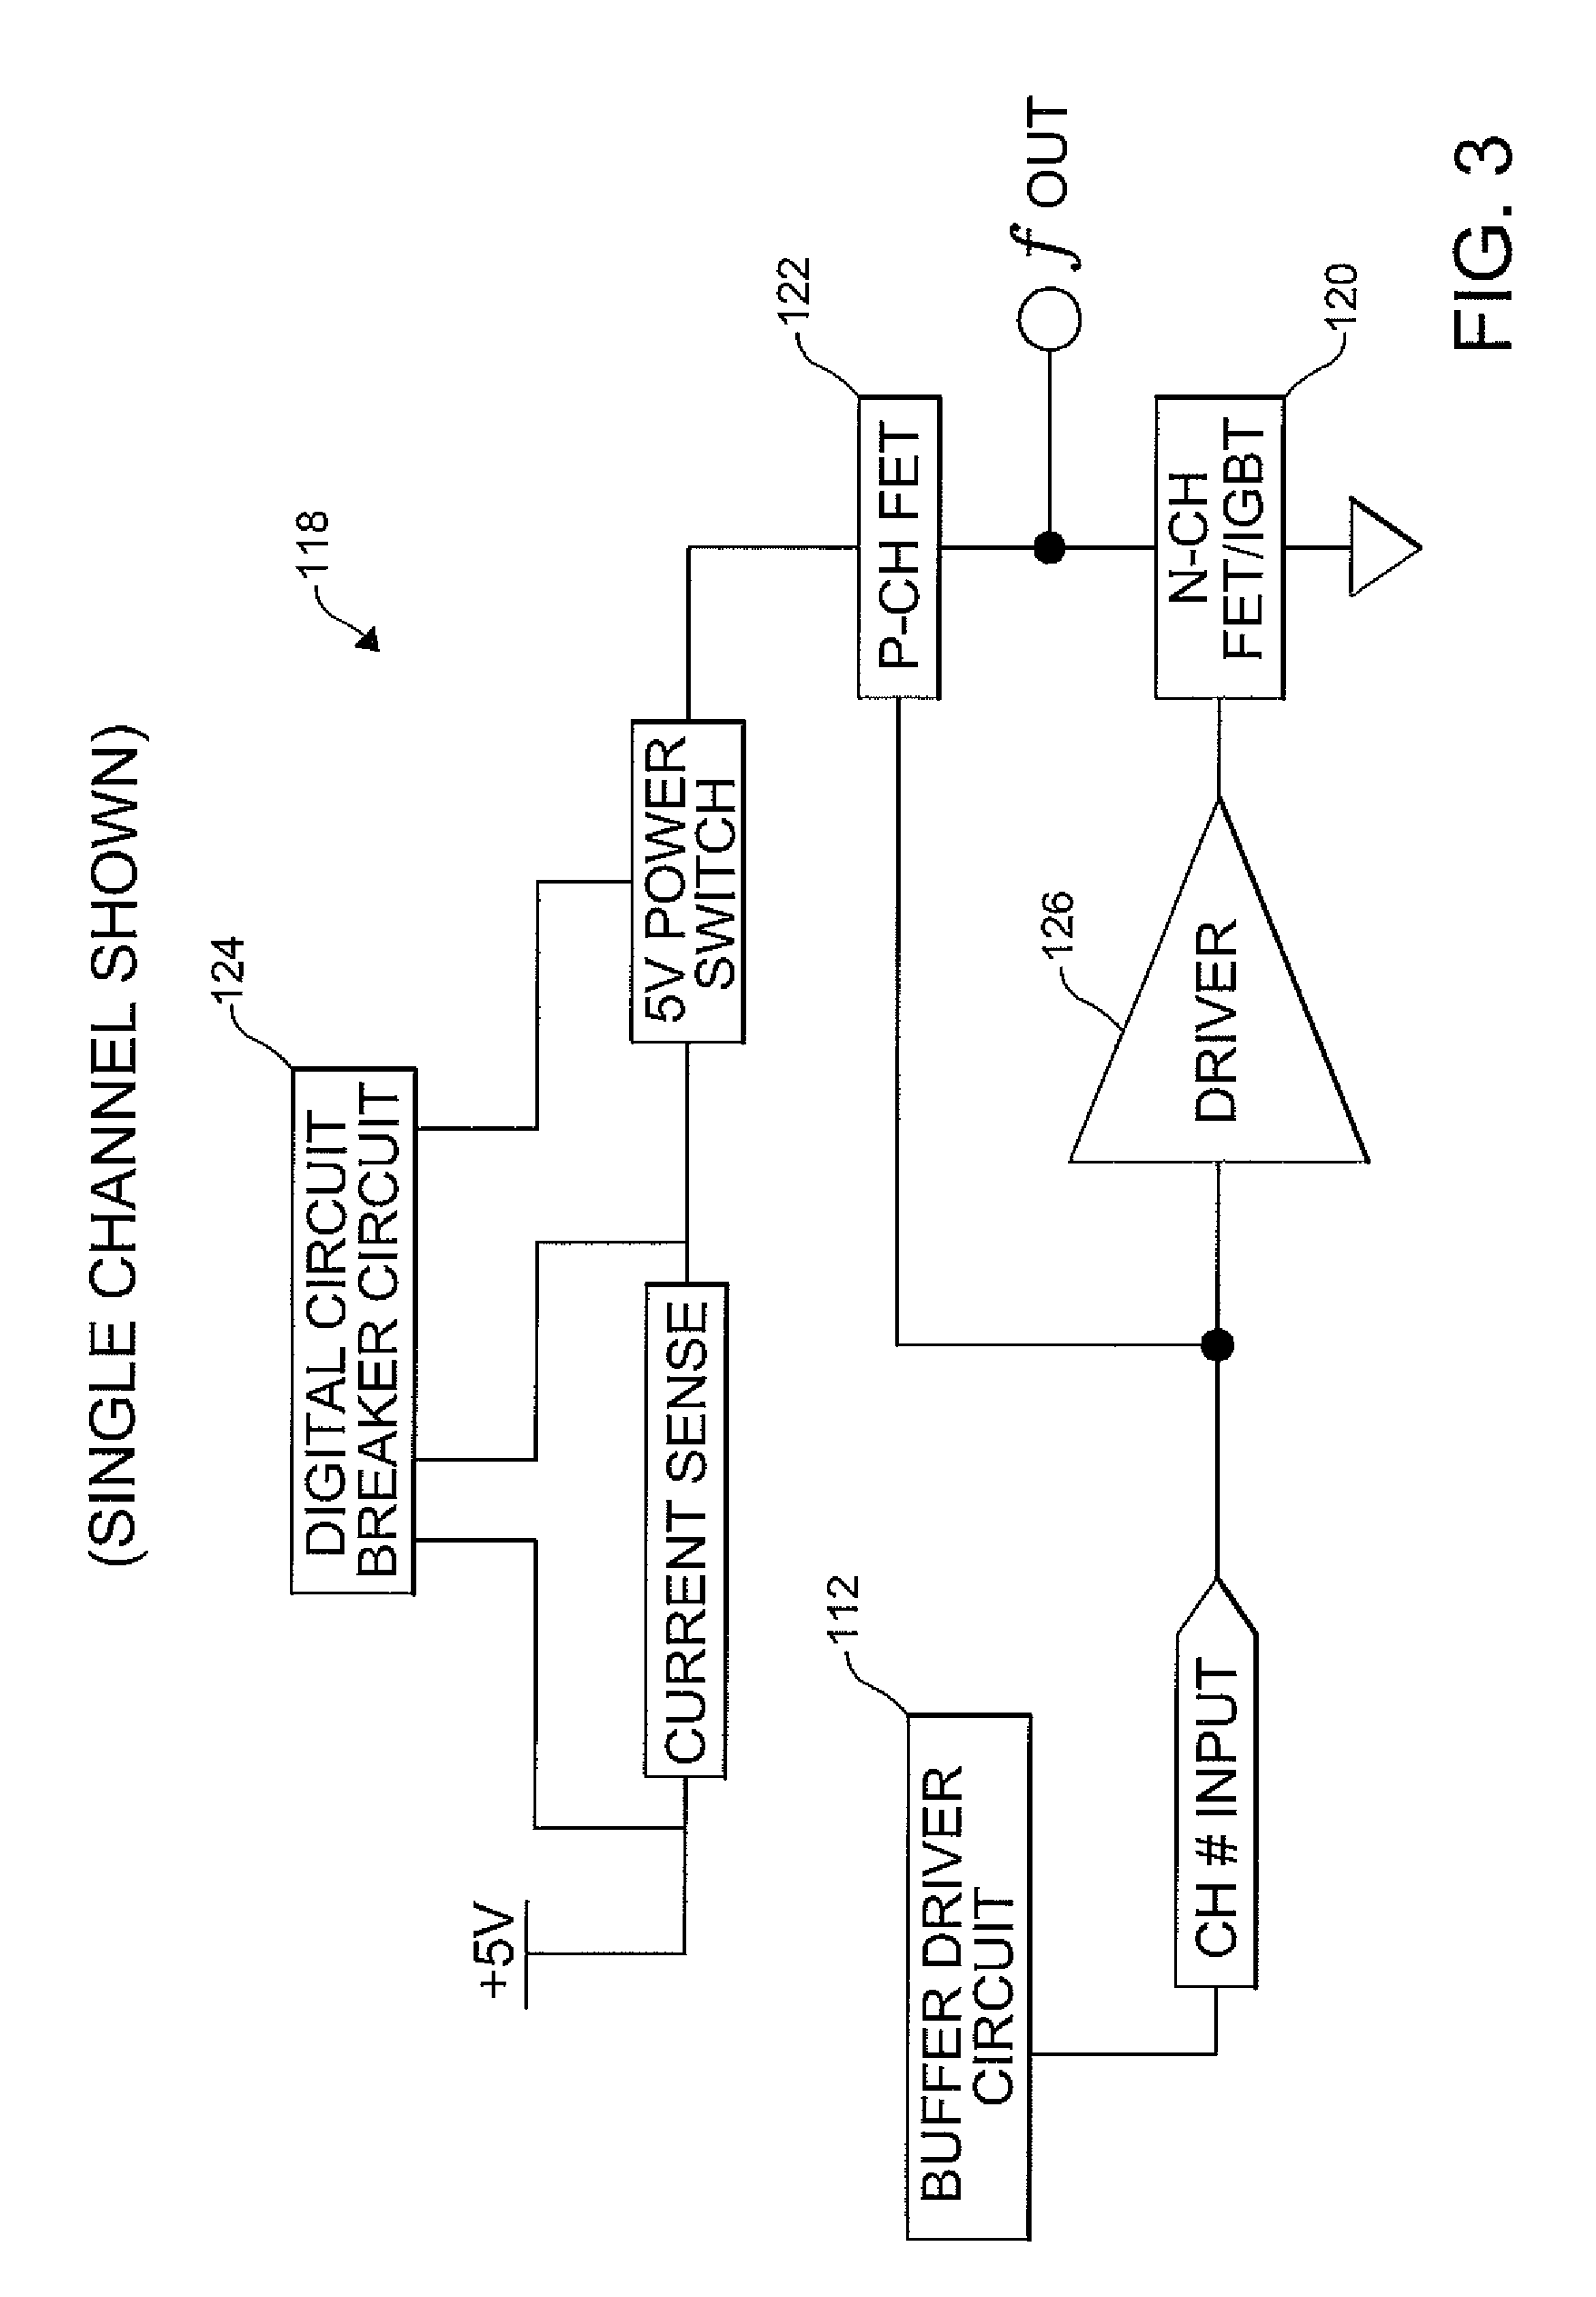 Patent Us8704409 High Speed Solid State Relay With Controller Using An Scr Combination This Circuit Can Be Made To Cut Off Drawing